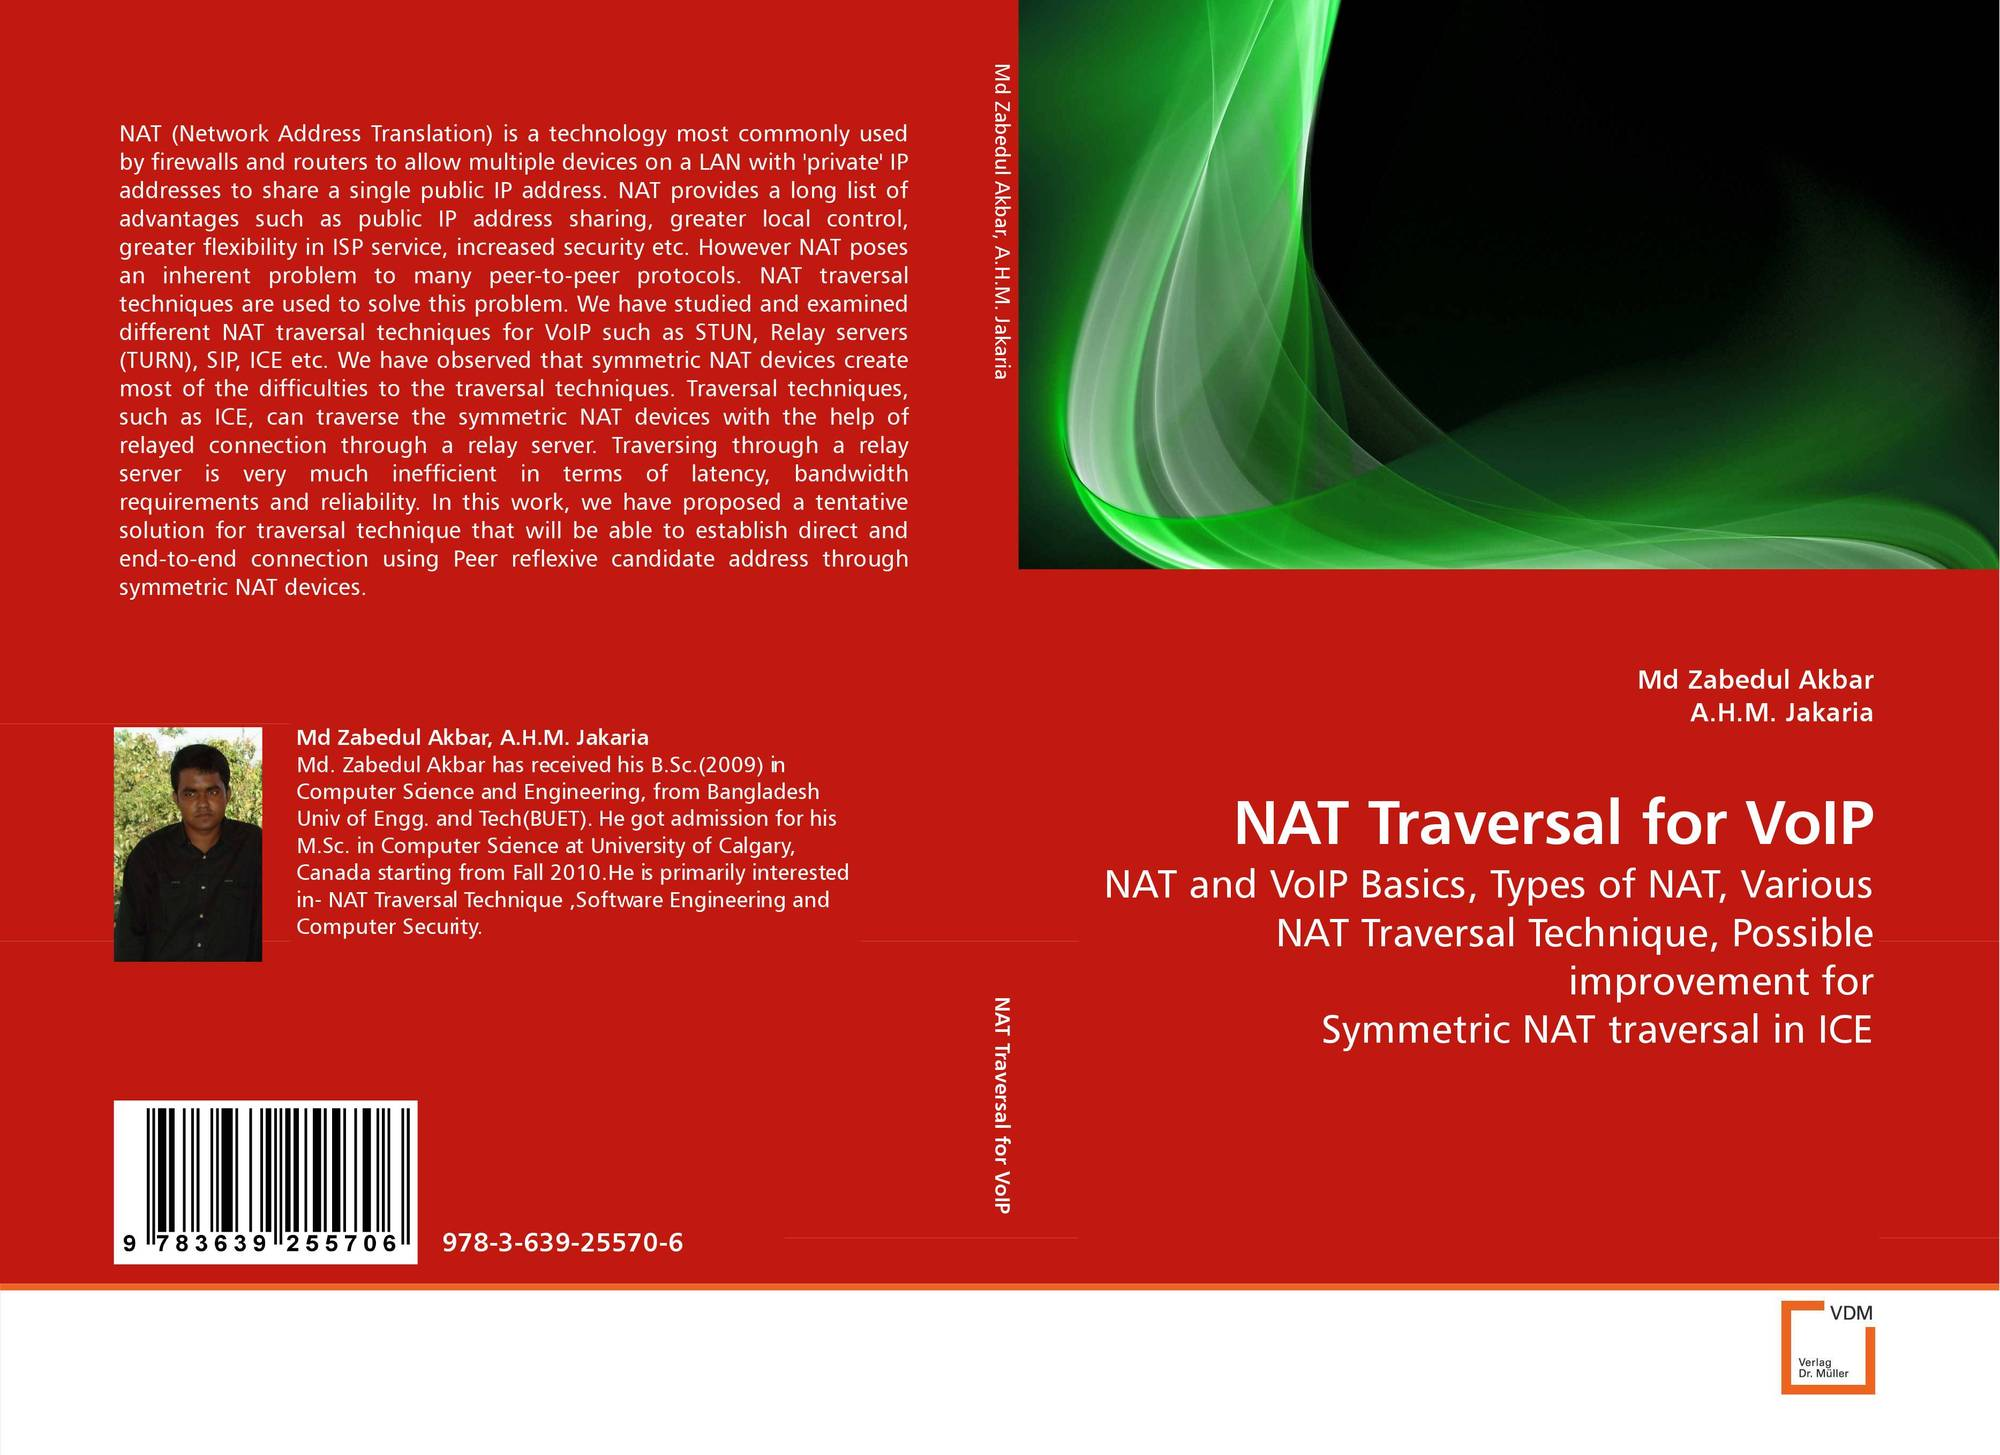 NAT Traversal for VoIP, 978-3-639-25570-6, 3639255704